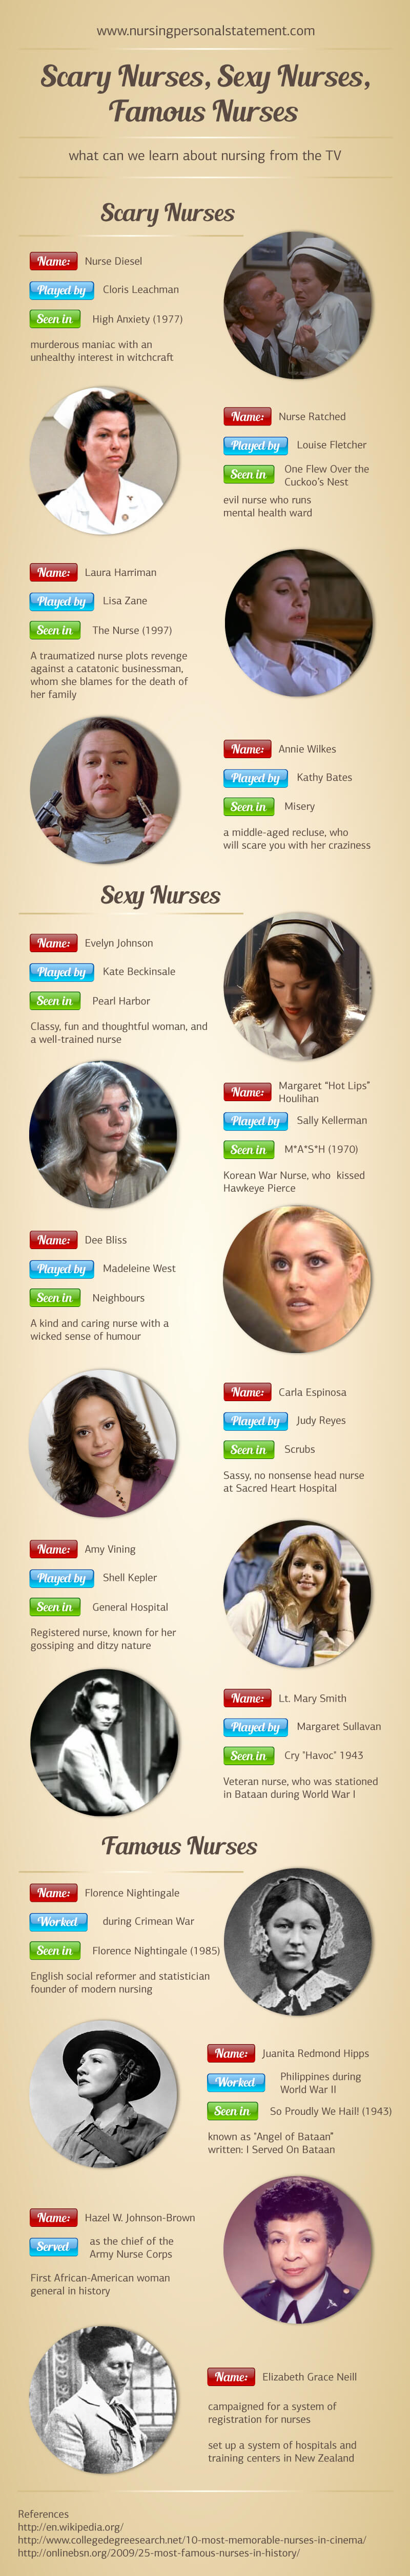 famous-nurses-infographic-what-we-learn-about-nursing-from-the-tv